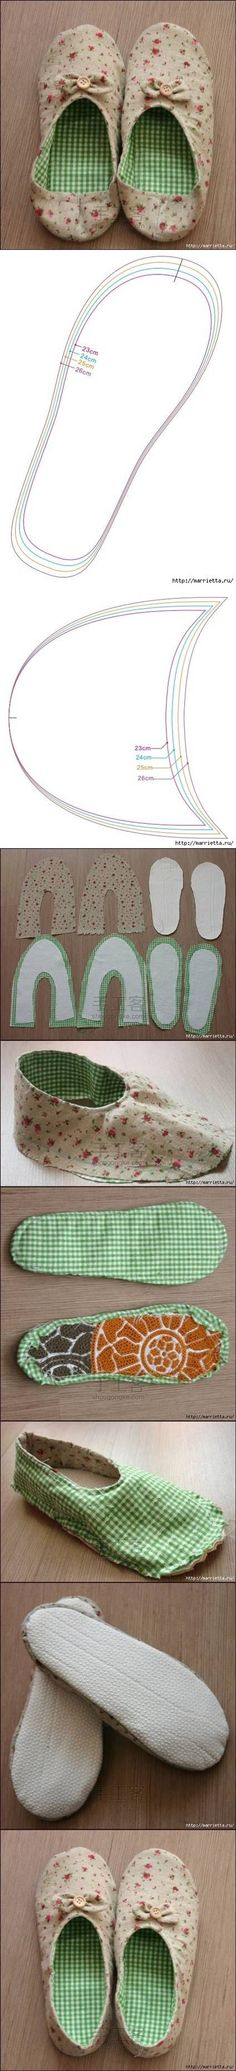 DIY Womens House Slippers: